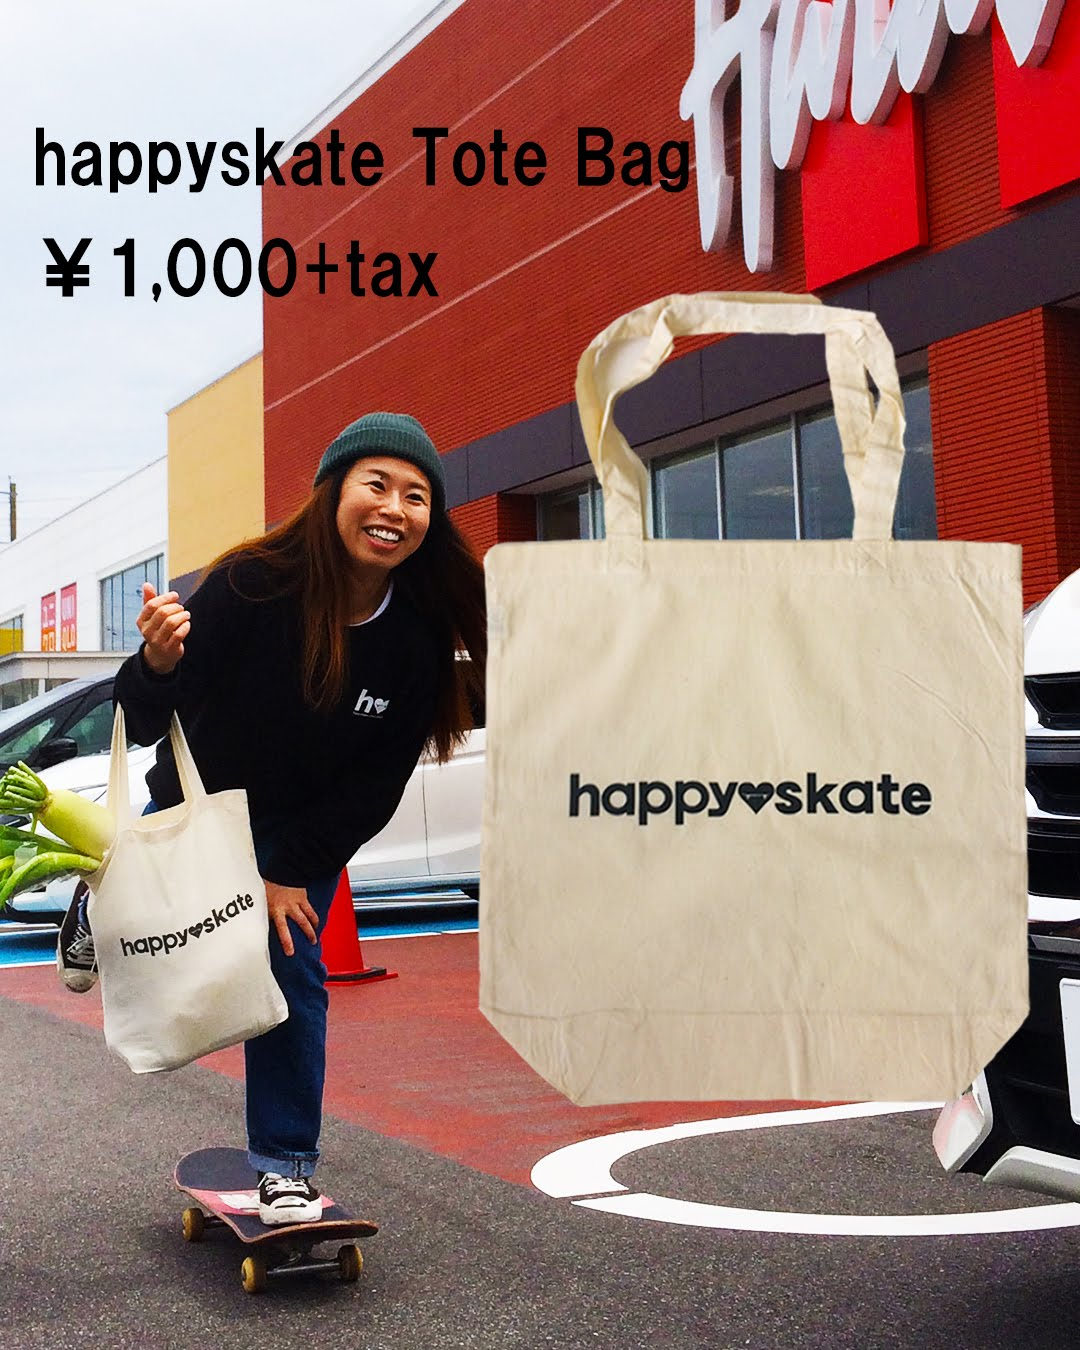 happyskate Tote Bag